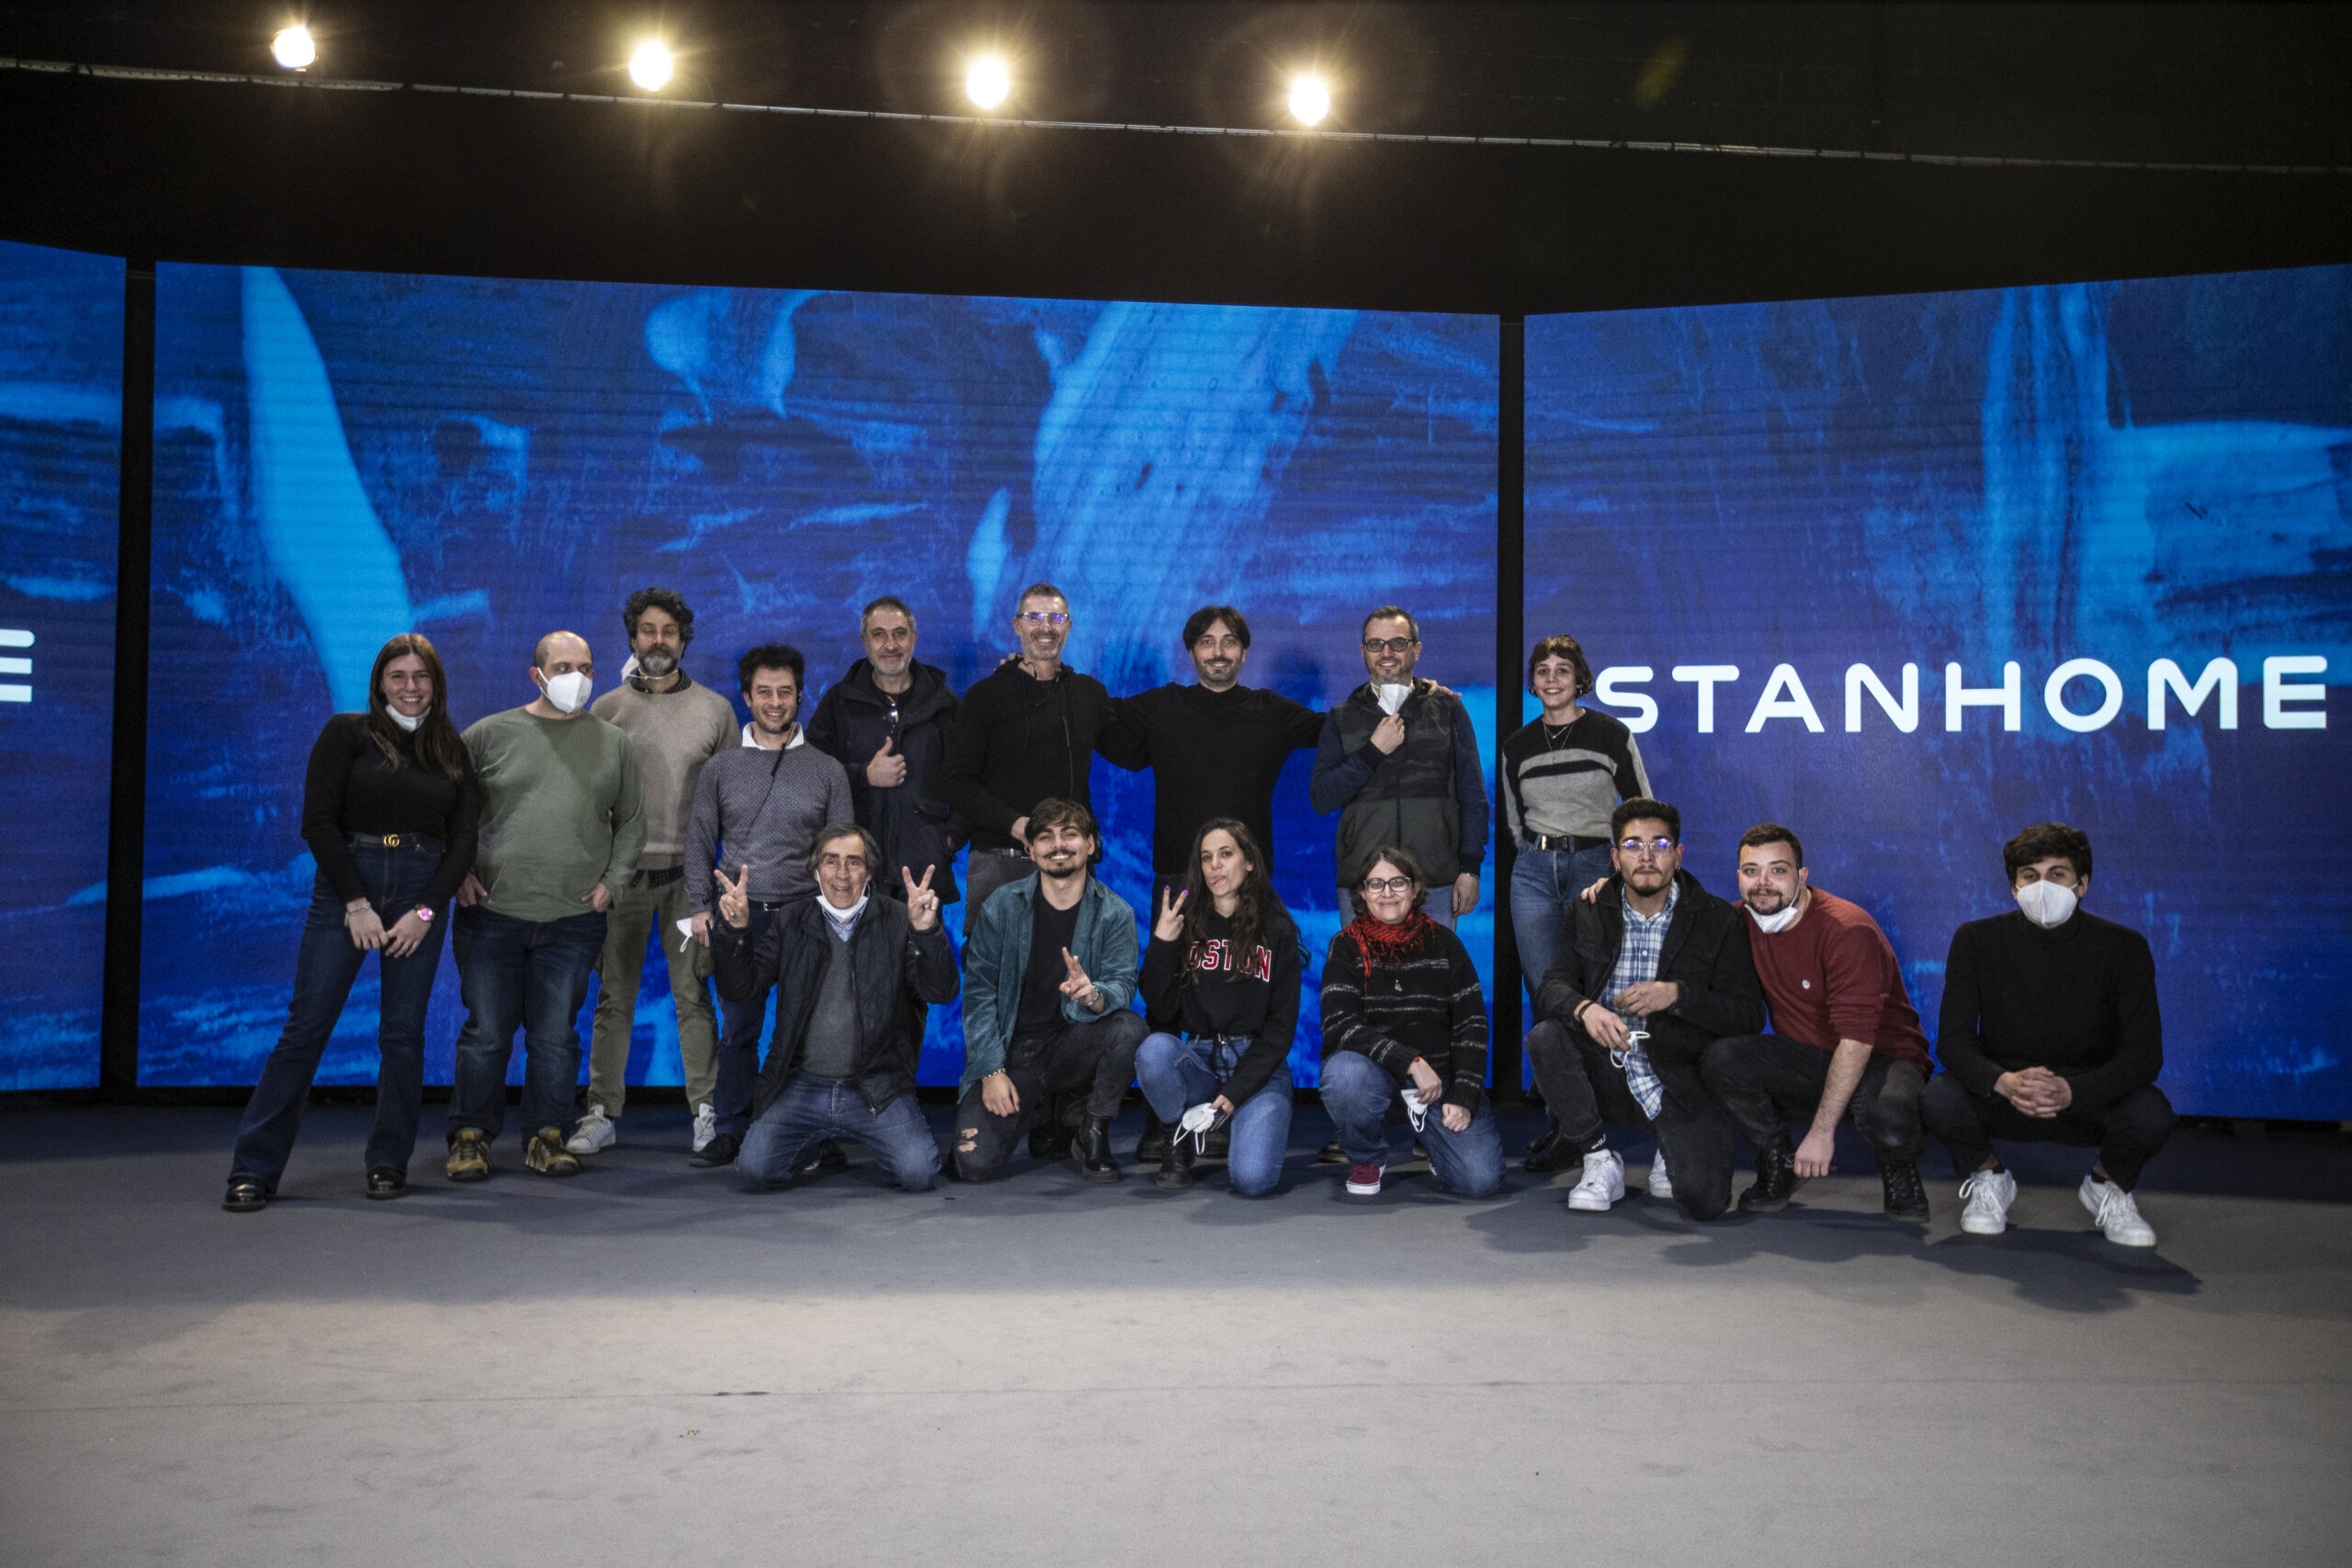 Evento Digitale Stanhome Streaming Ledwall Roma